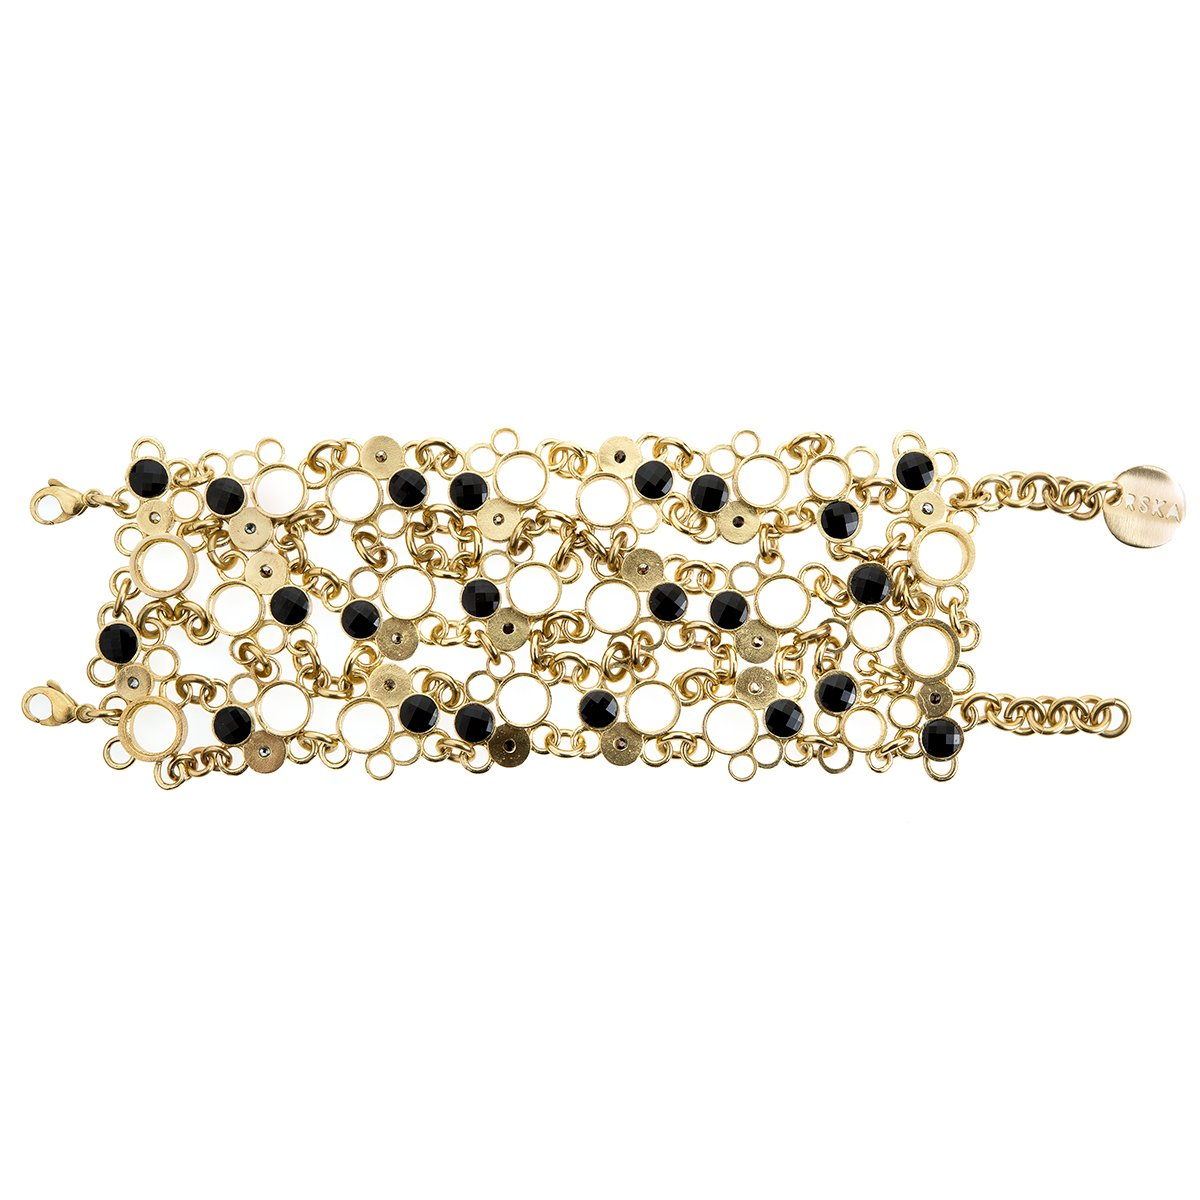 Bracelet from Soda collection - SA79